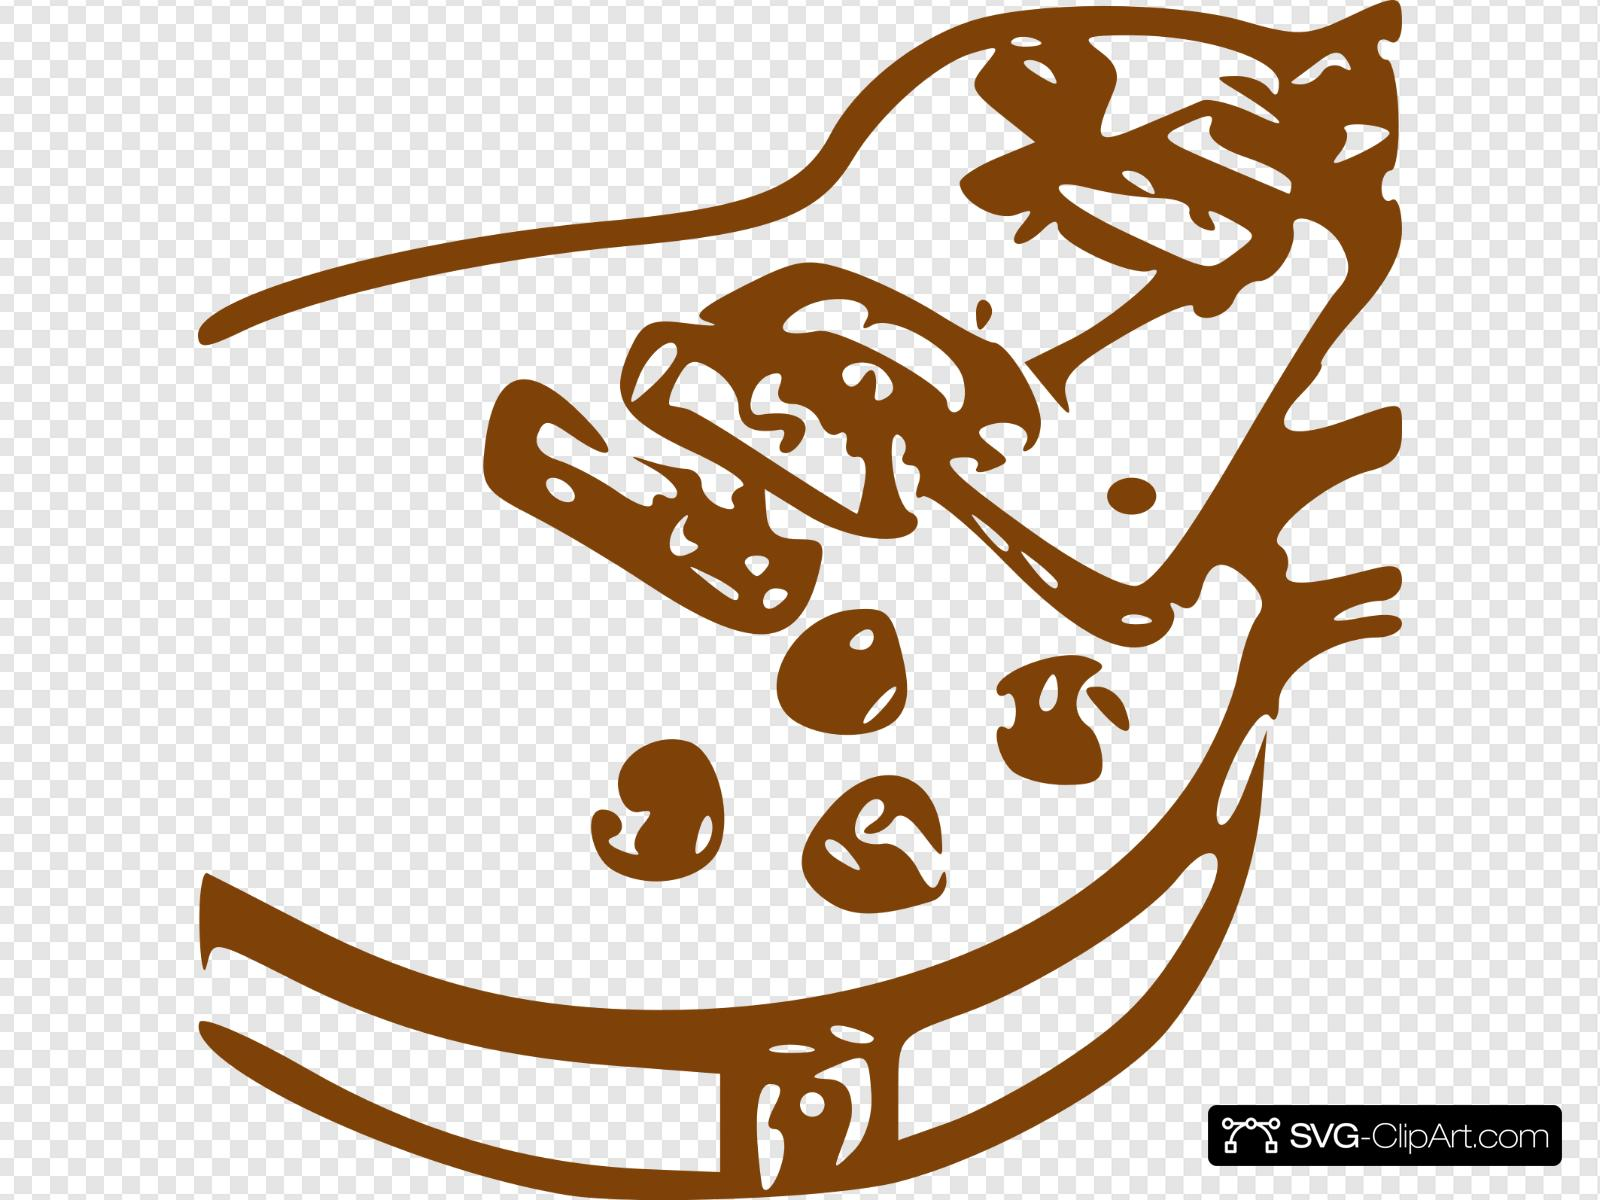 Gibson Les Paul Guitar Clip art, Icon and SVG.